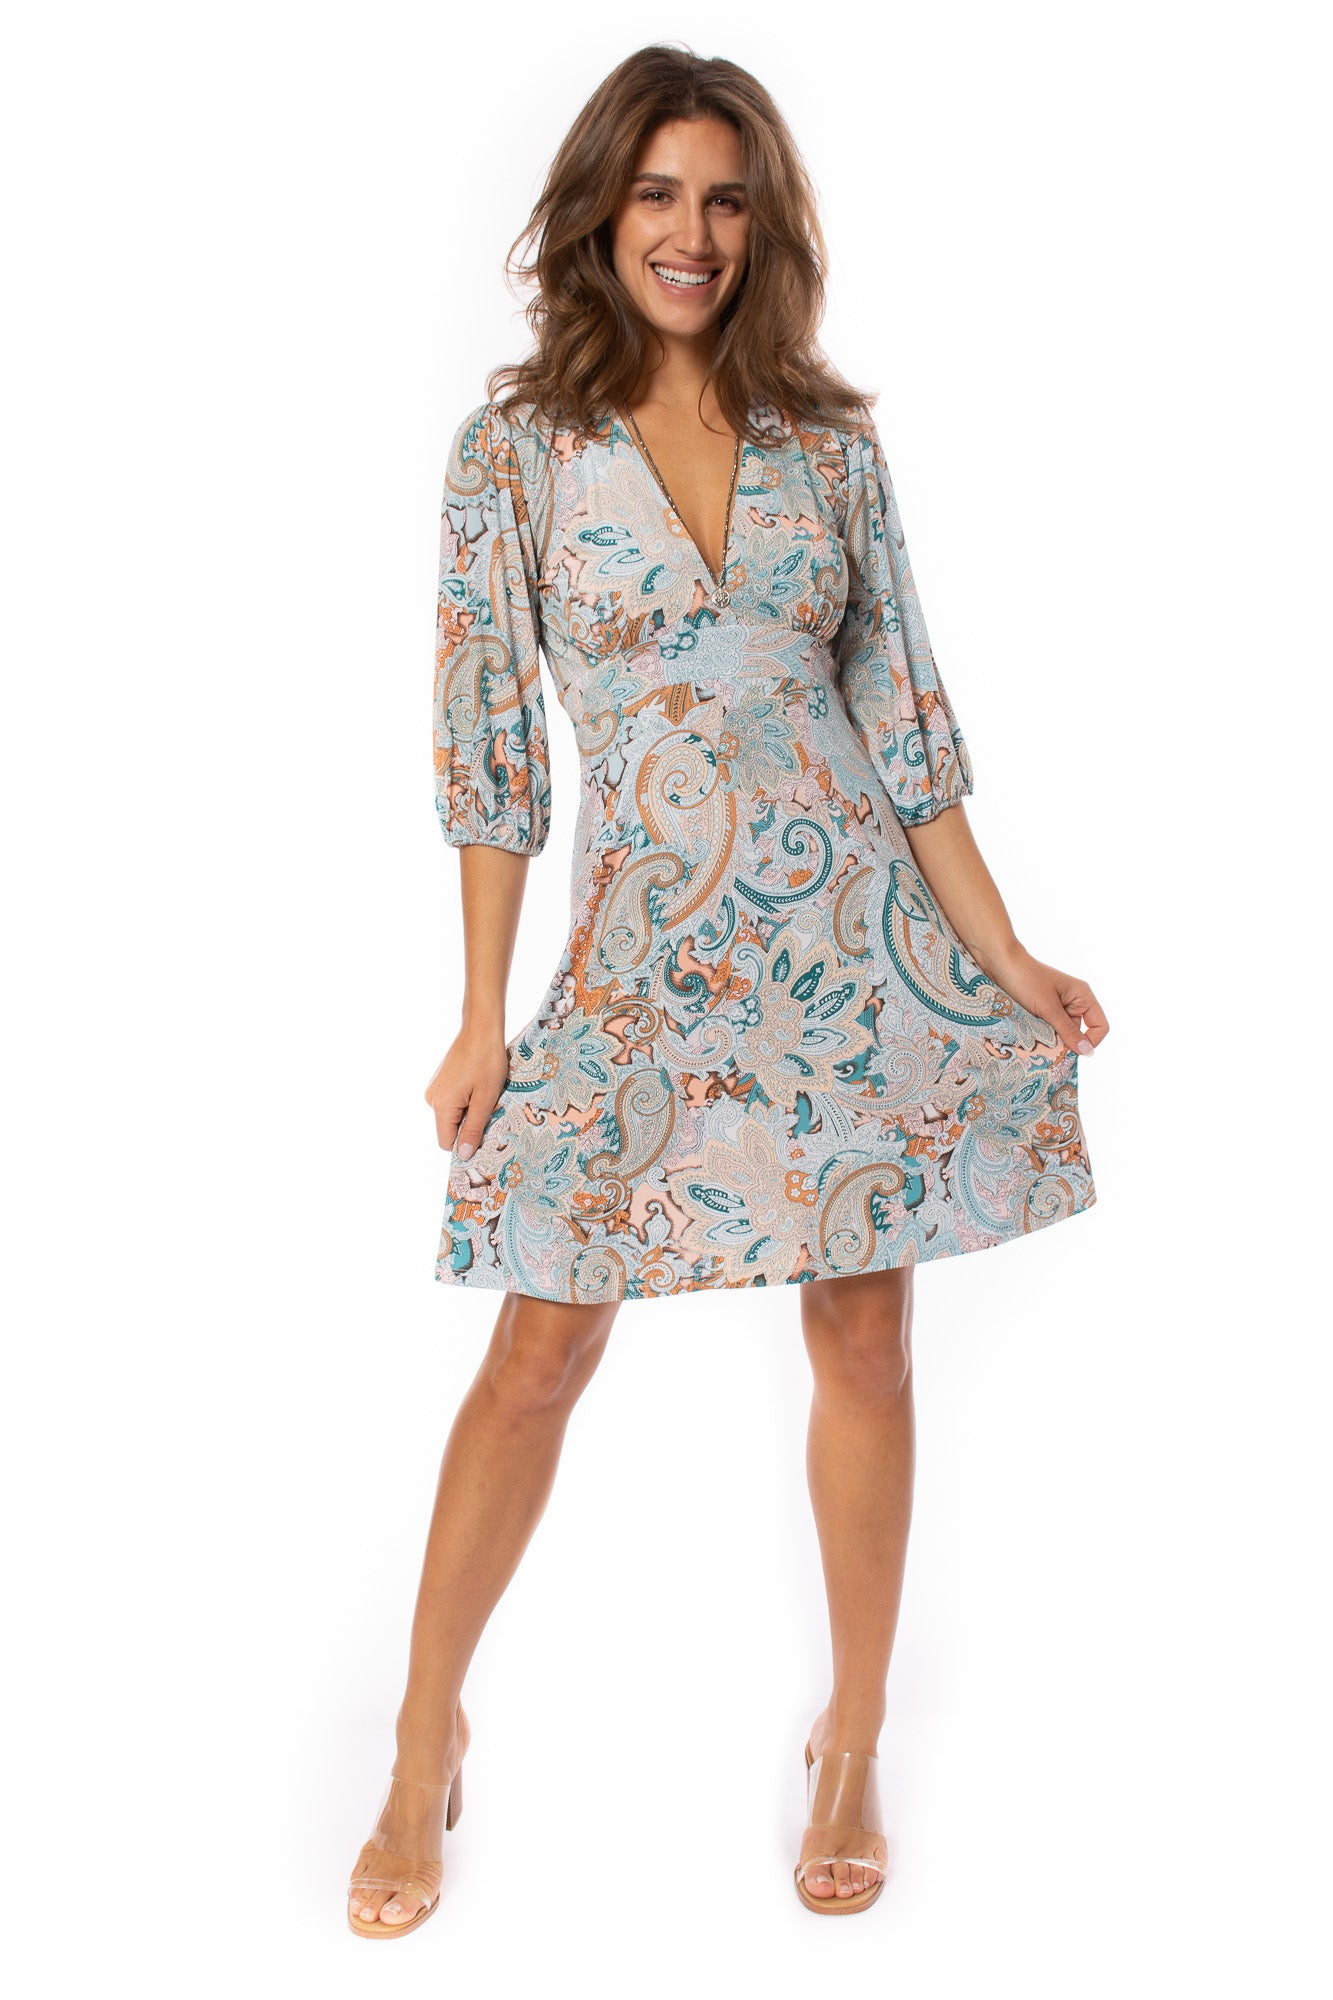 Veronica M. - V Neck 3/4 Sleeve Dress (DSS-2643, Ashlyn)